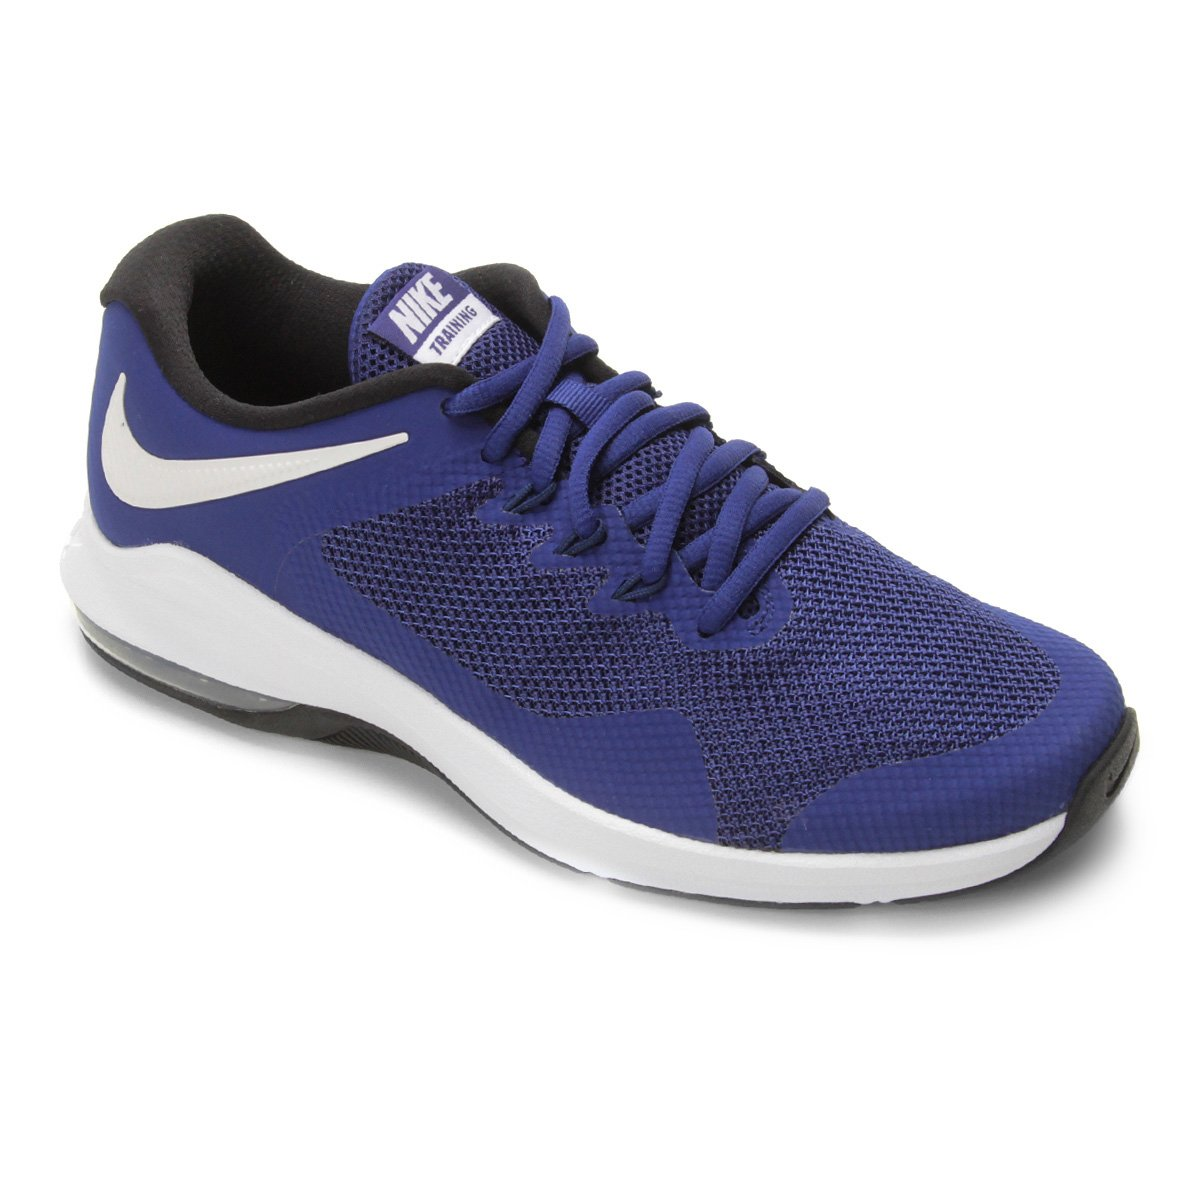 the best attitude 4312d c7dad Tênis Nike Air Max Alpha Trainer Masculino - Azul Escuro - Compre Agora   Netshoes